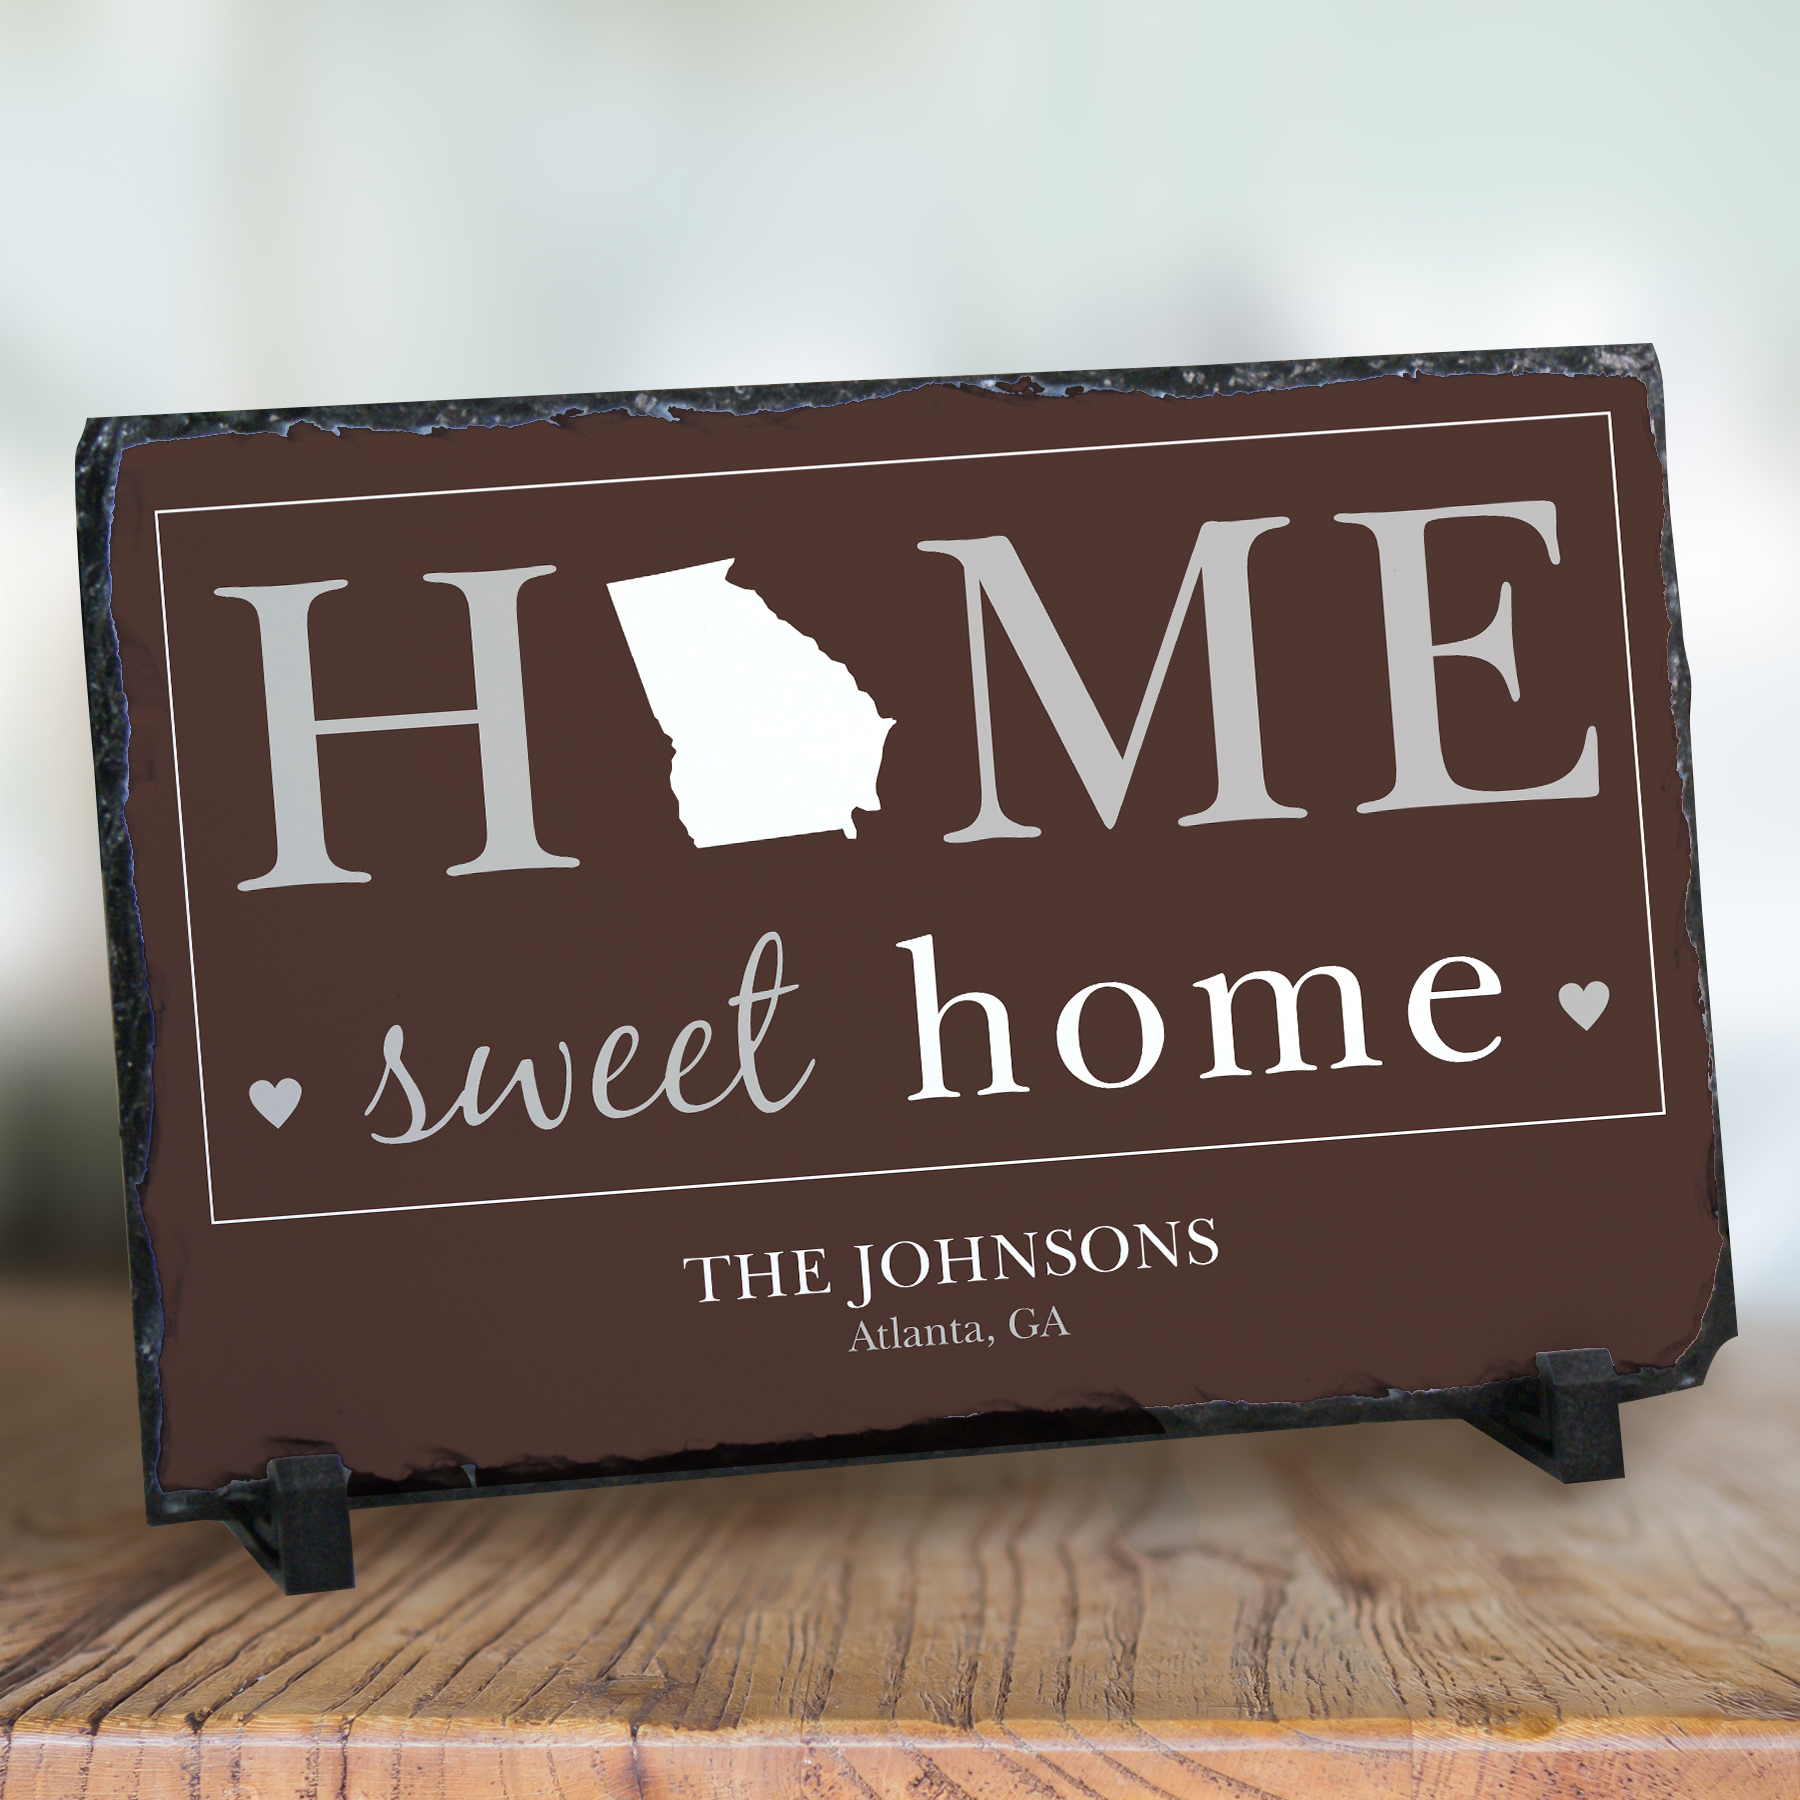 Personalized Home Sweet Home Welcome Stone Keepsake U747167